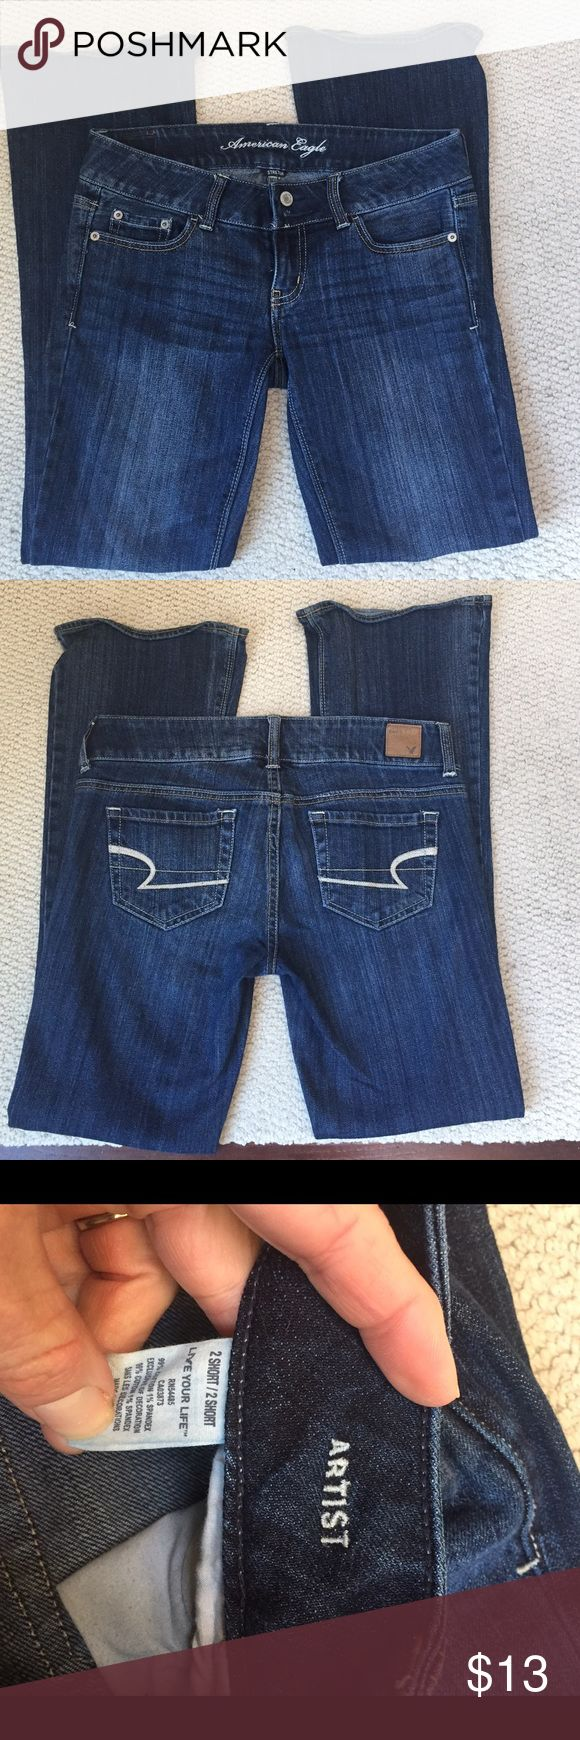 """American Eagle Live your Life Artist jeans AE Live your Life Artist bootcut jeans. Size 2 short.  29"""" inseam. 15"""" waist. Great condition. 99% cotton and 1% spandex. American Eagle Outfitters Jeans Boot Cut"""